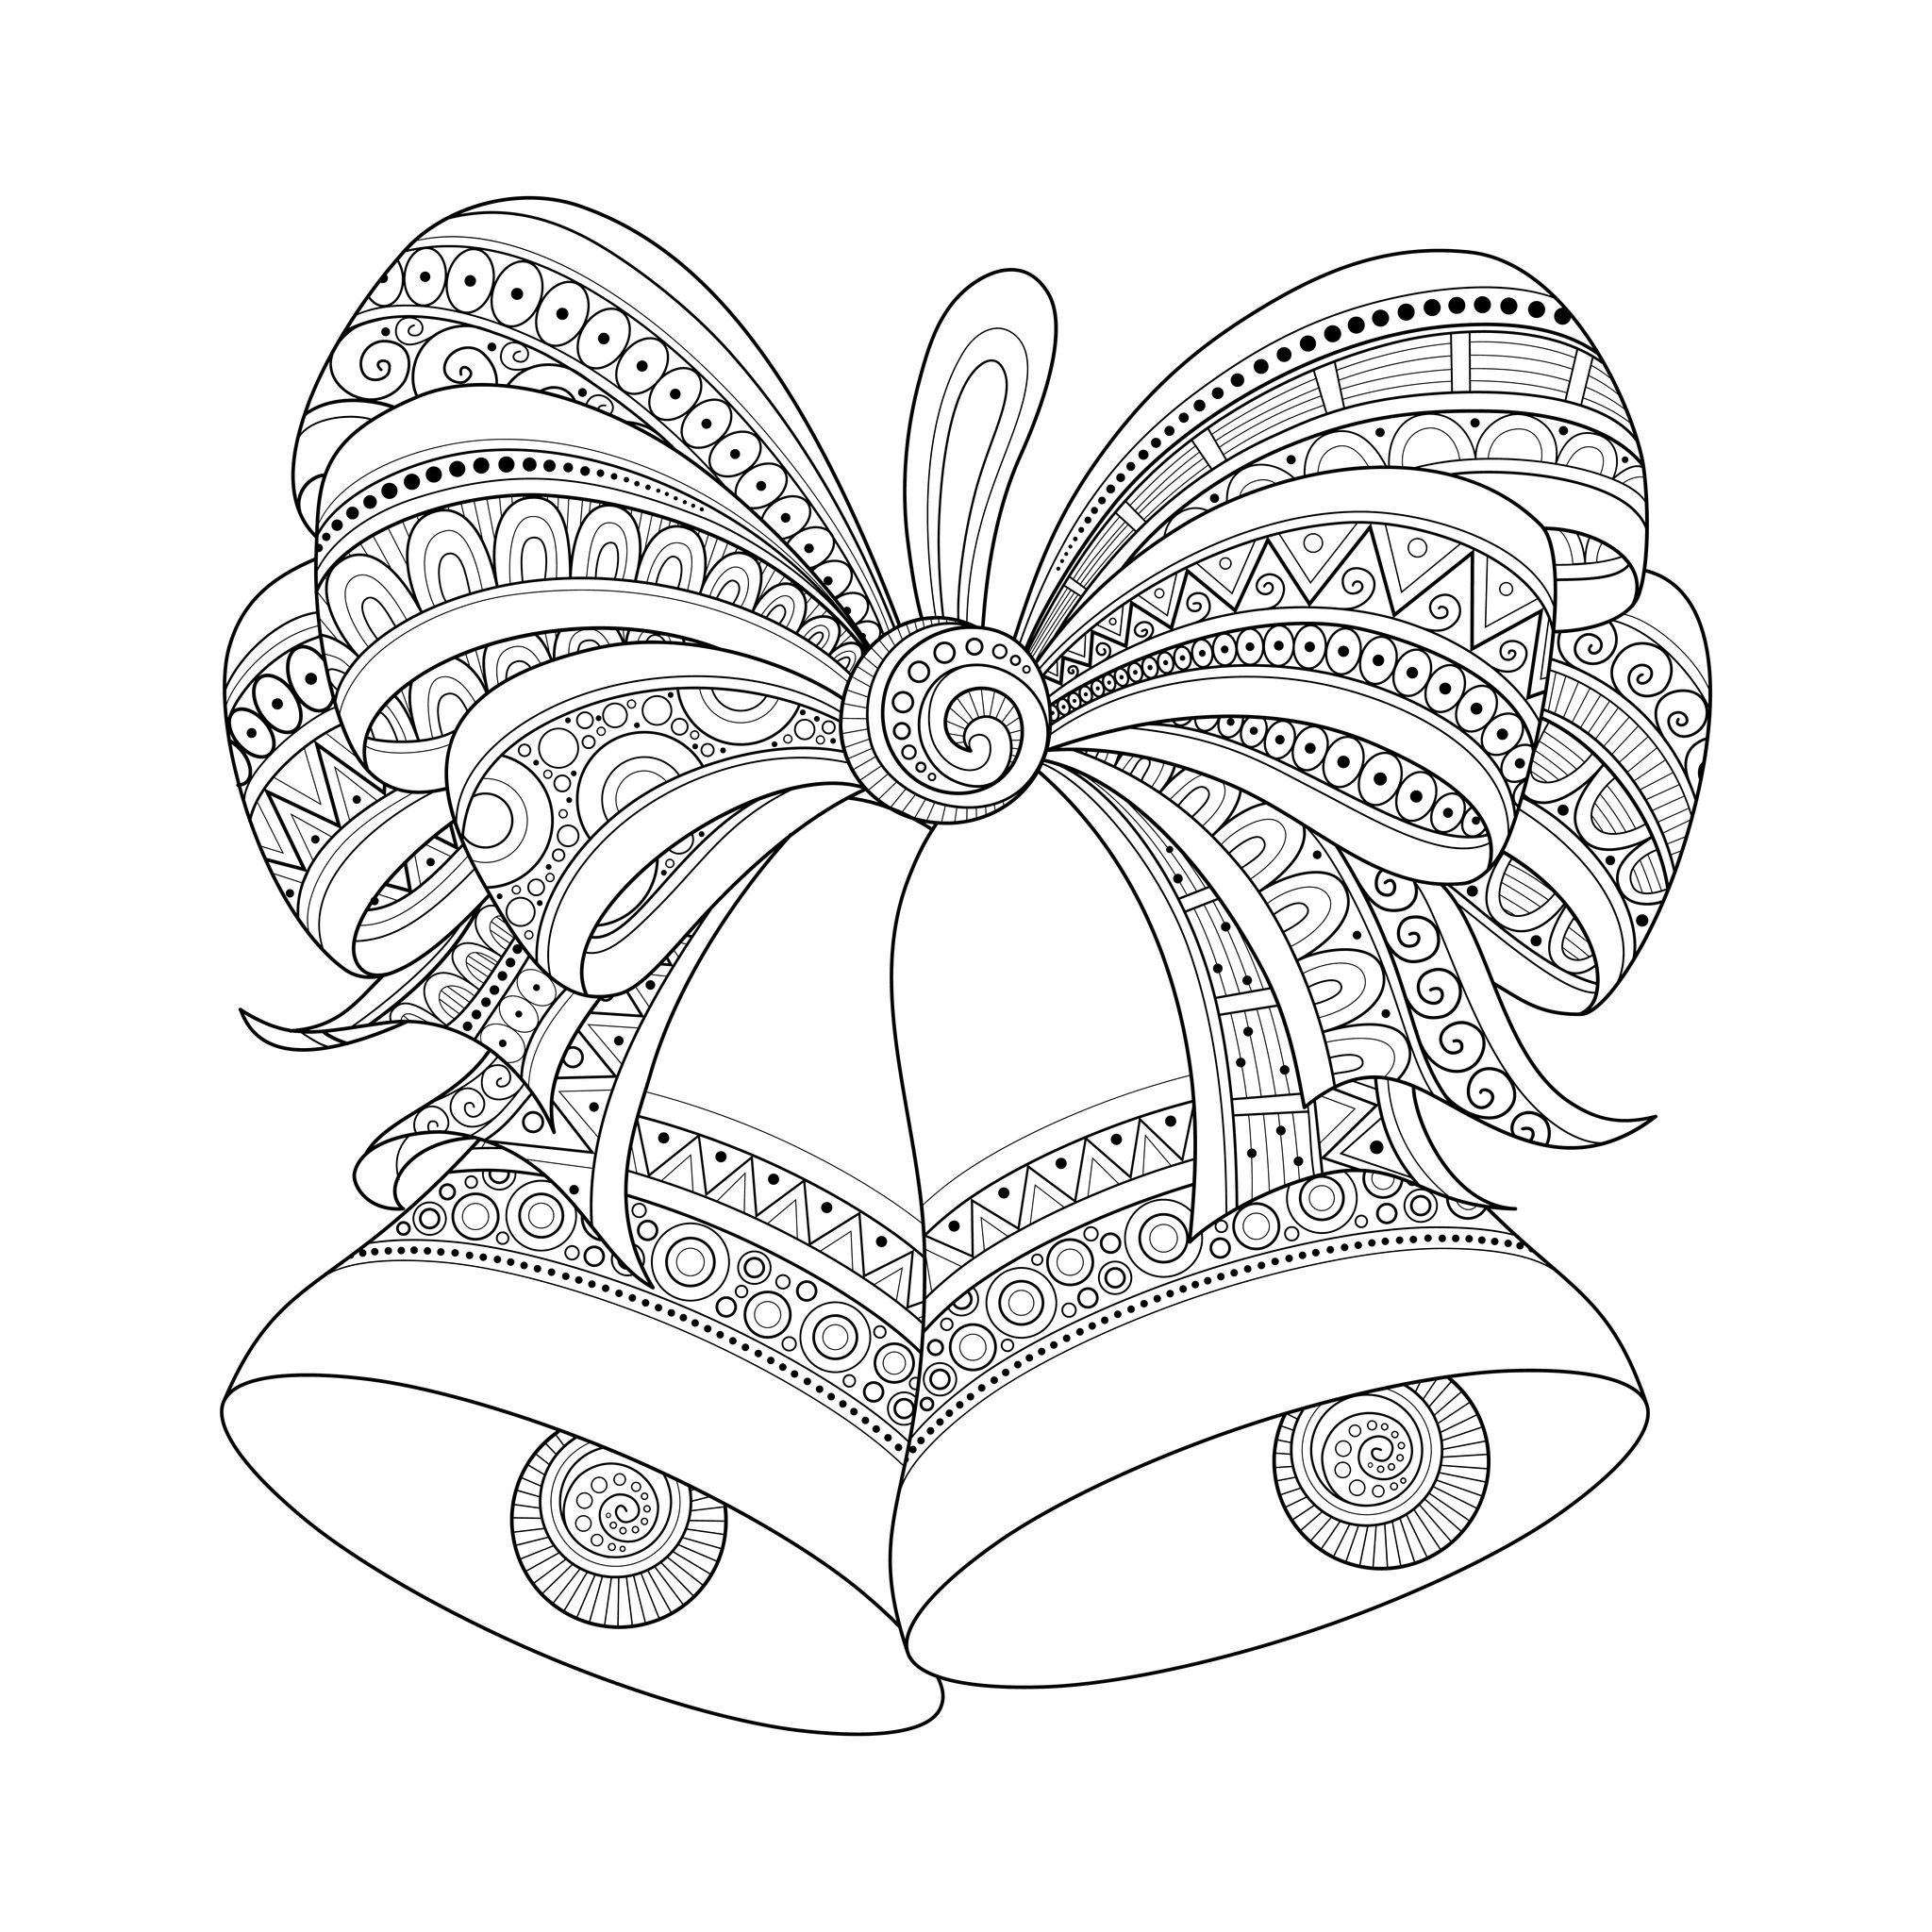 Stress relief coloring pages - Our Most Popular Coloring Pages